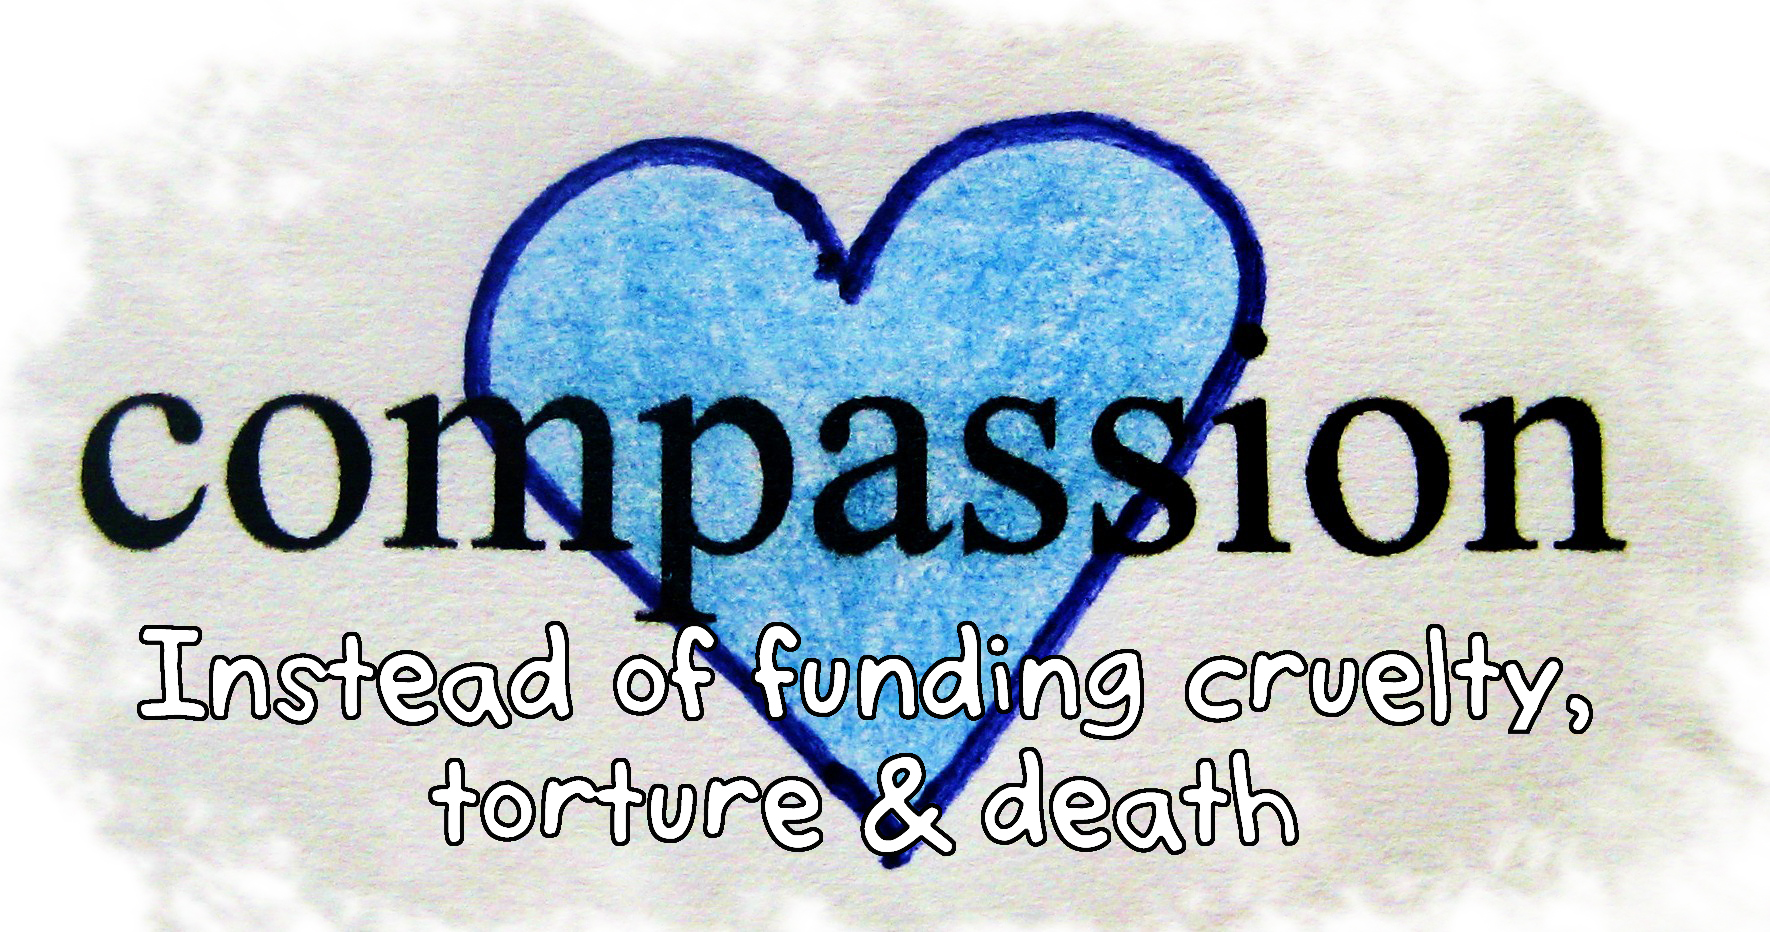 Choose compassion instead of funding torture, cruelty, and killing